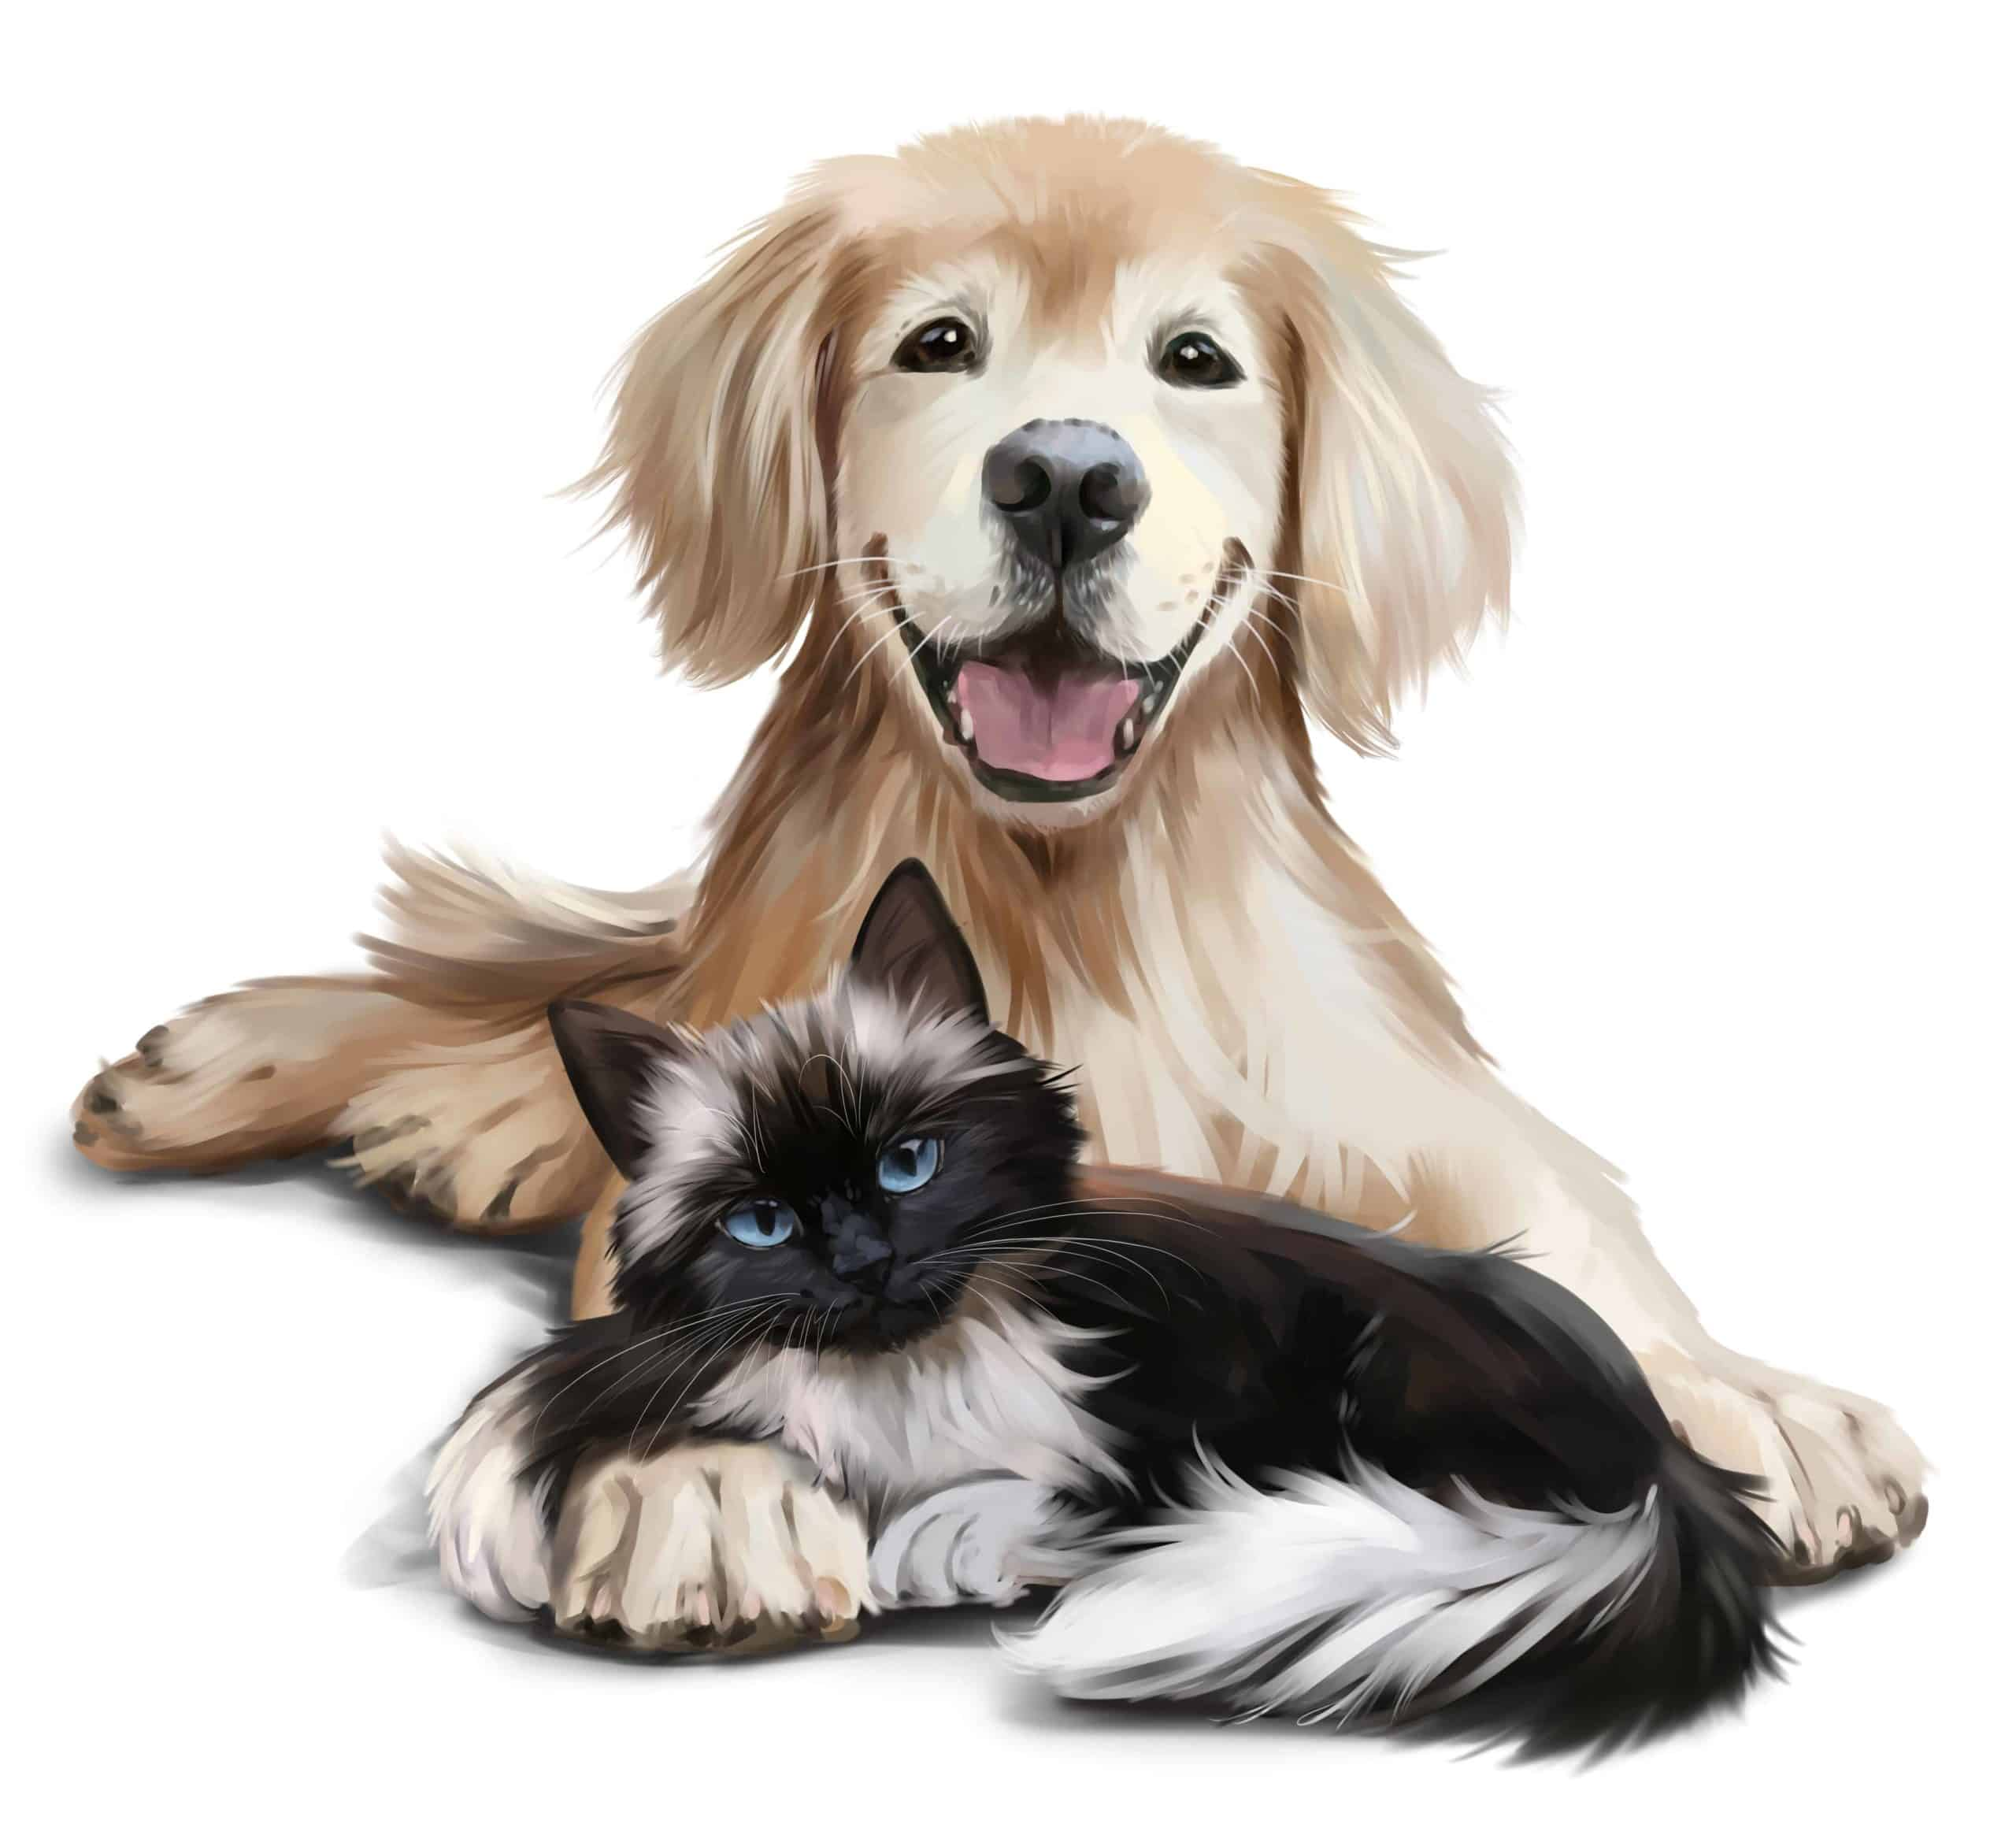 Dog and cat pet portrait. Pet portraits capture your pet's personality and provide a perfect addition to a gallery wall or mantle display of family members.